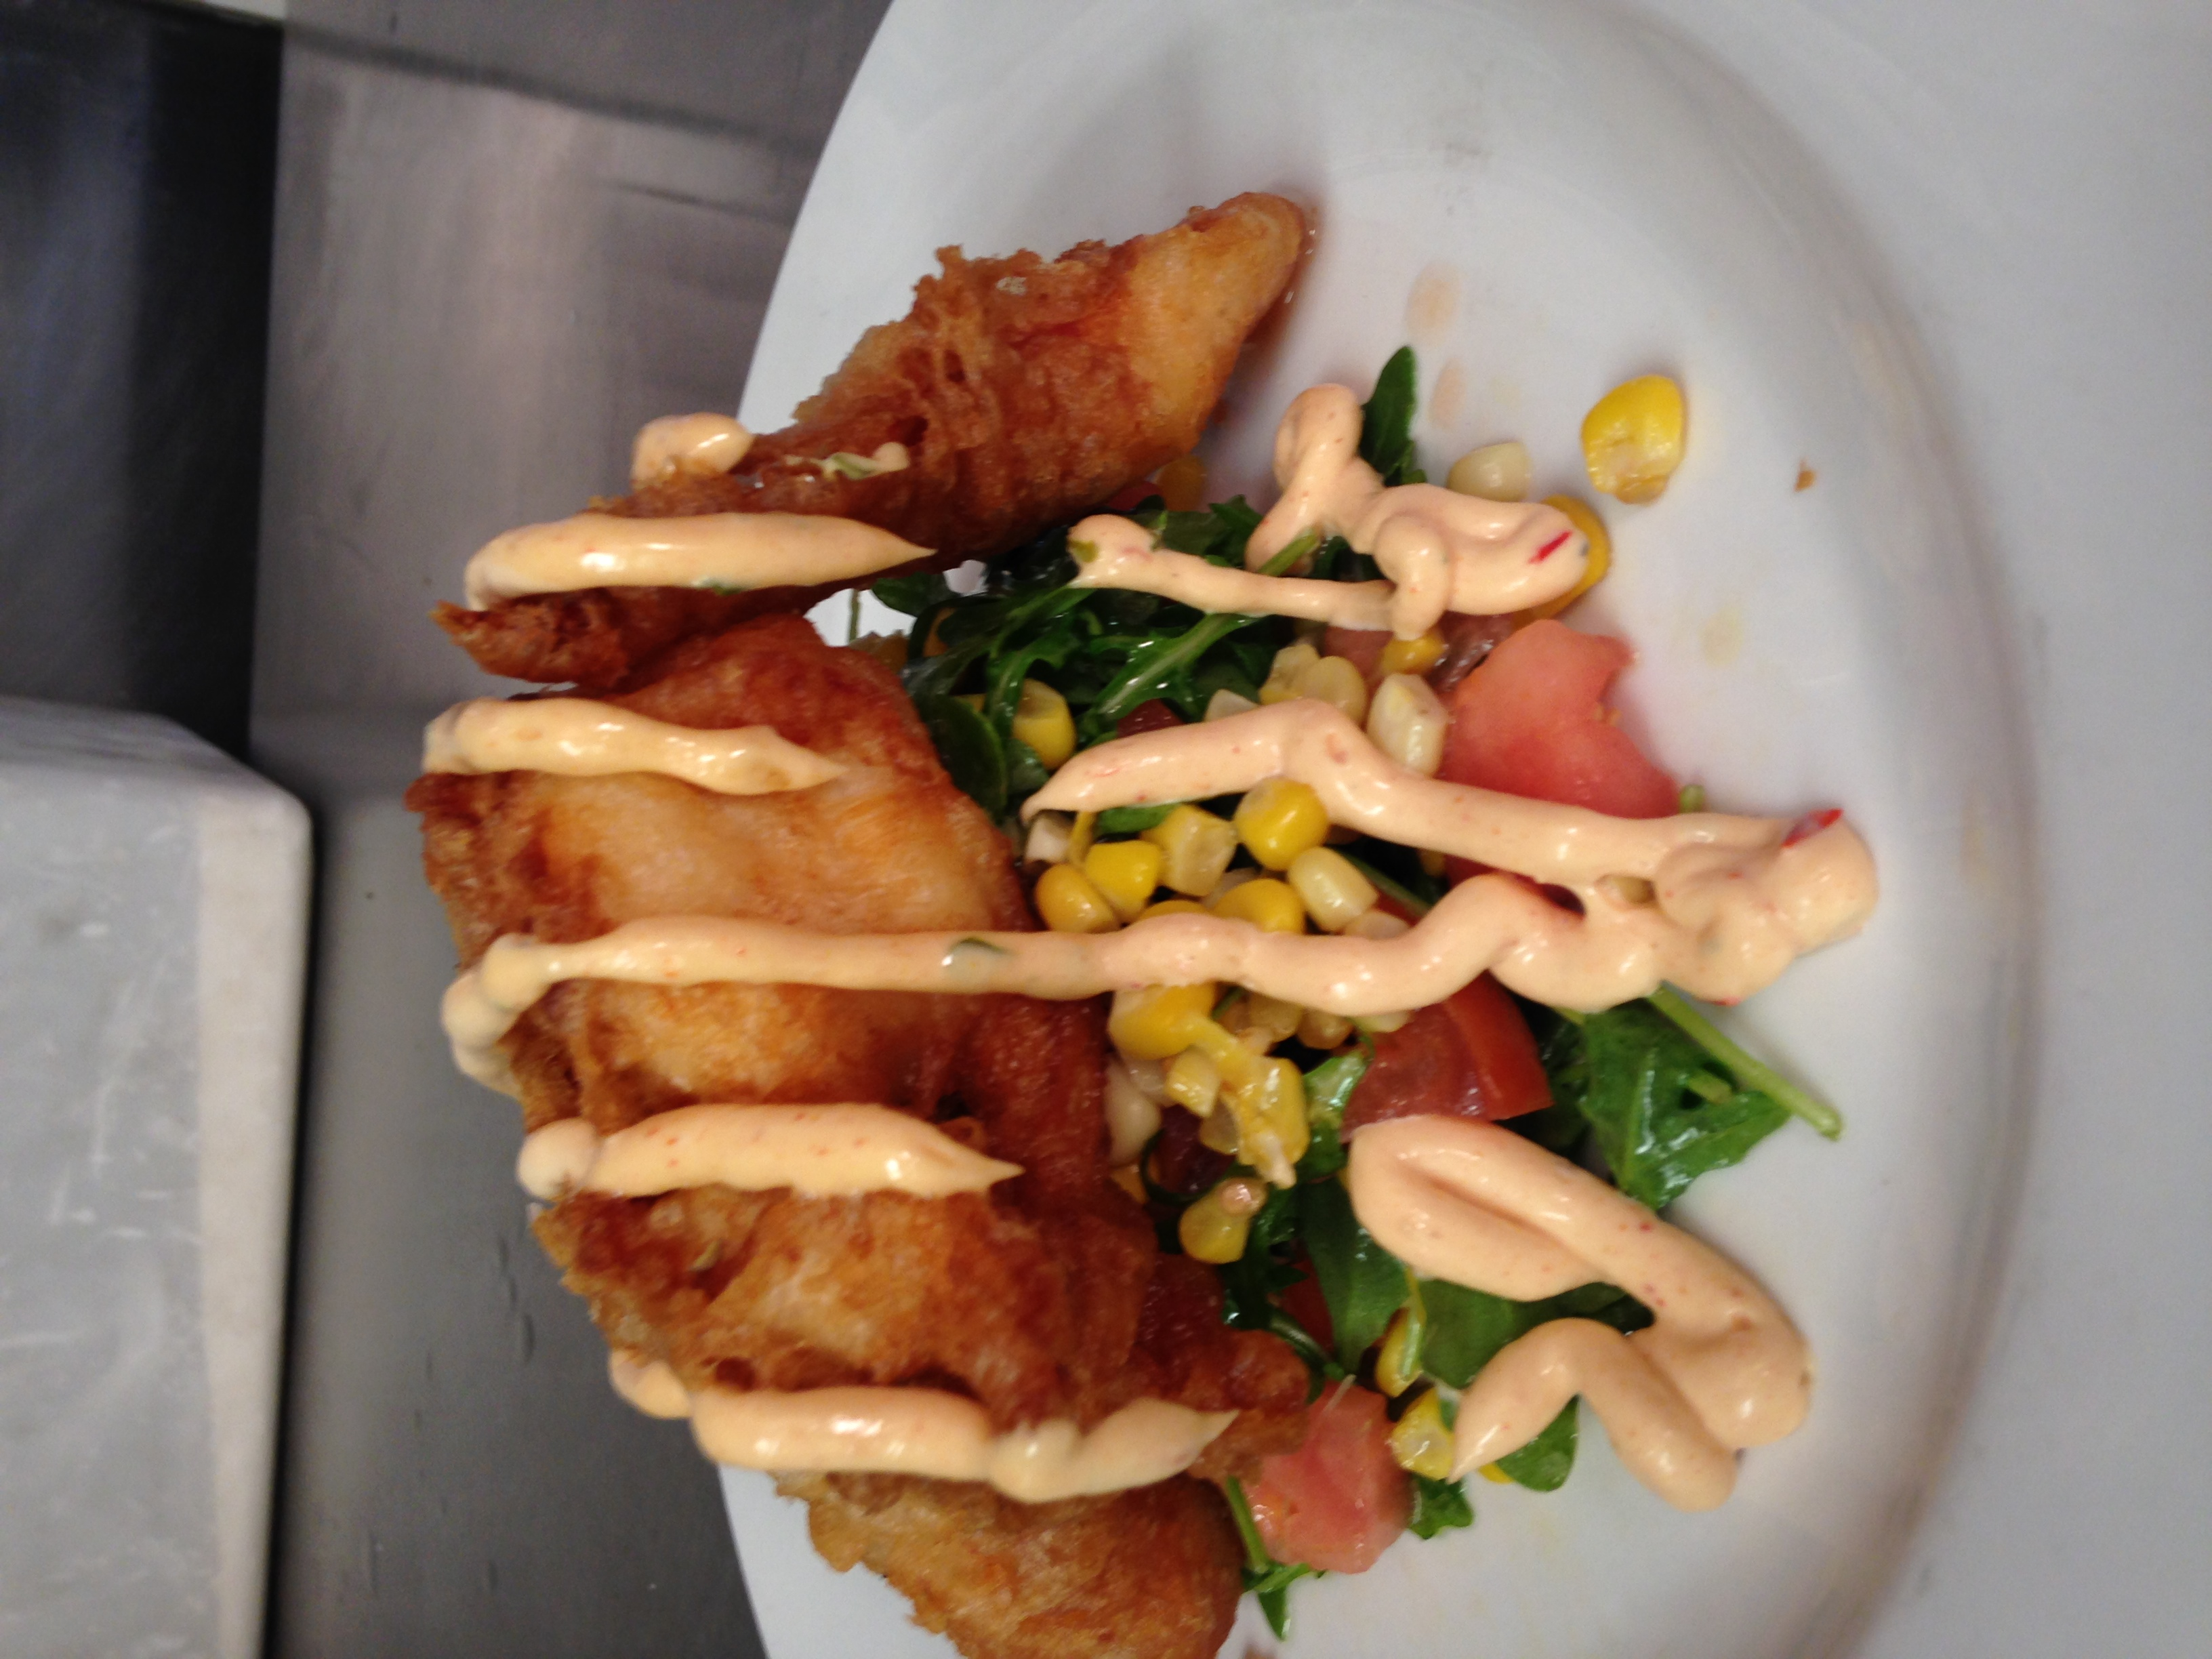 Fried lobster -Corn and tomato salad